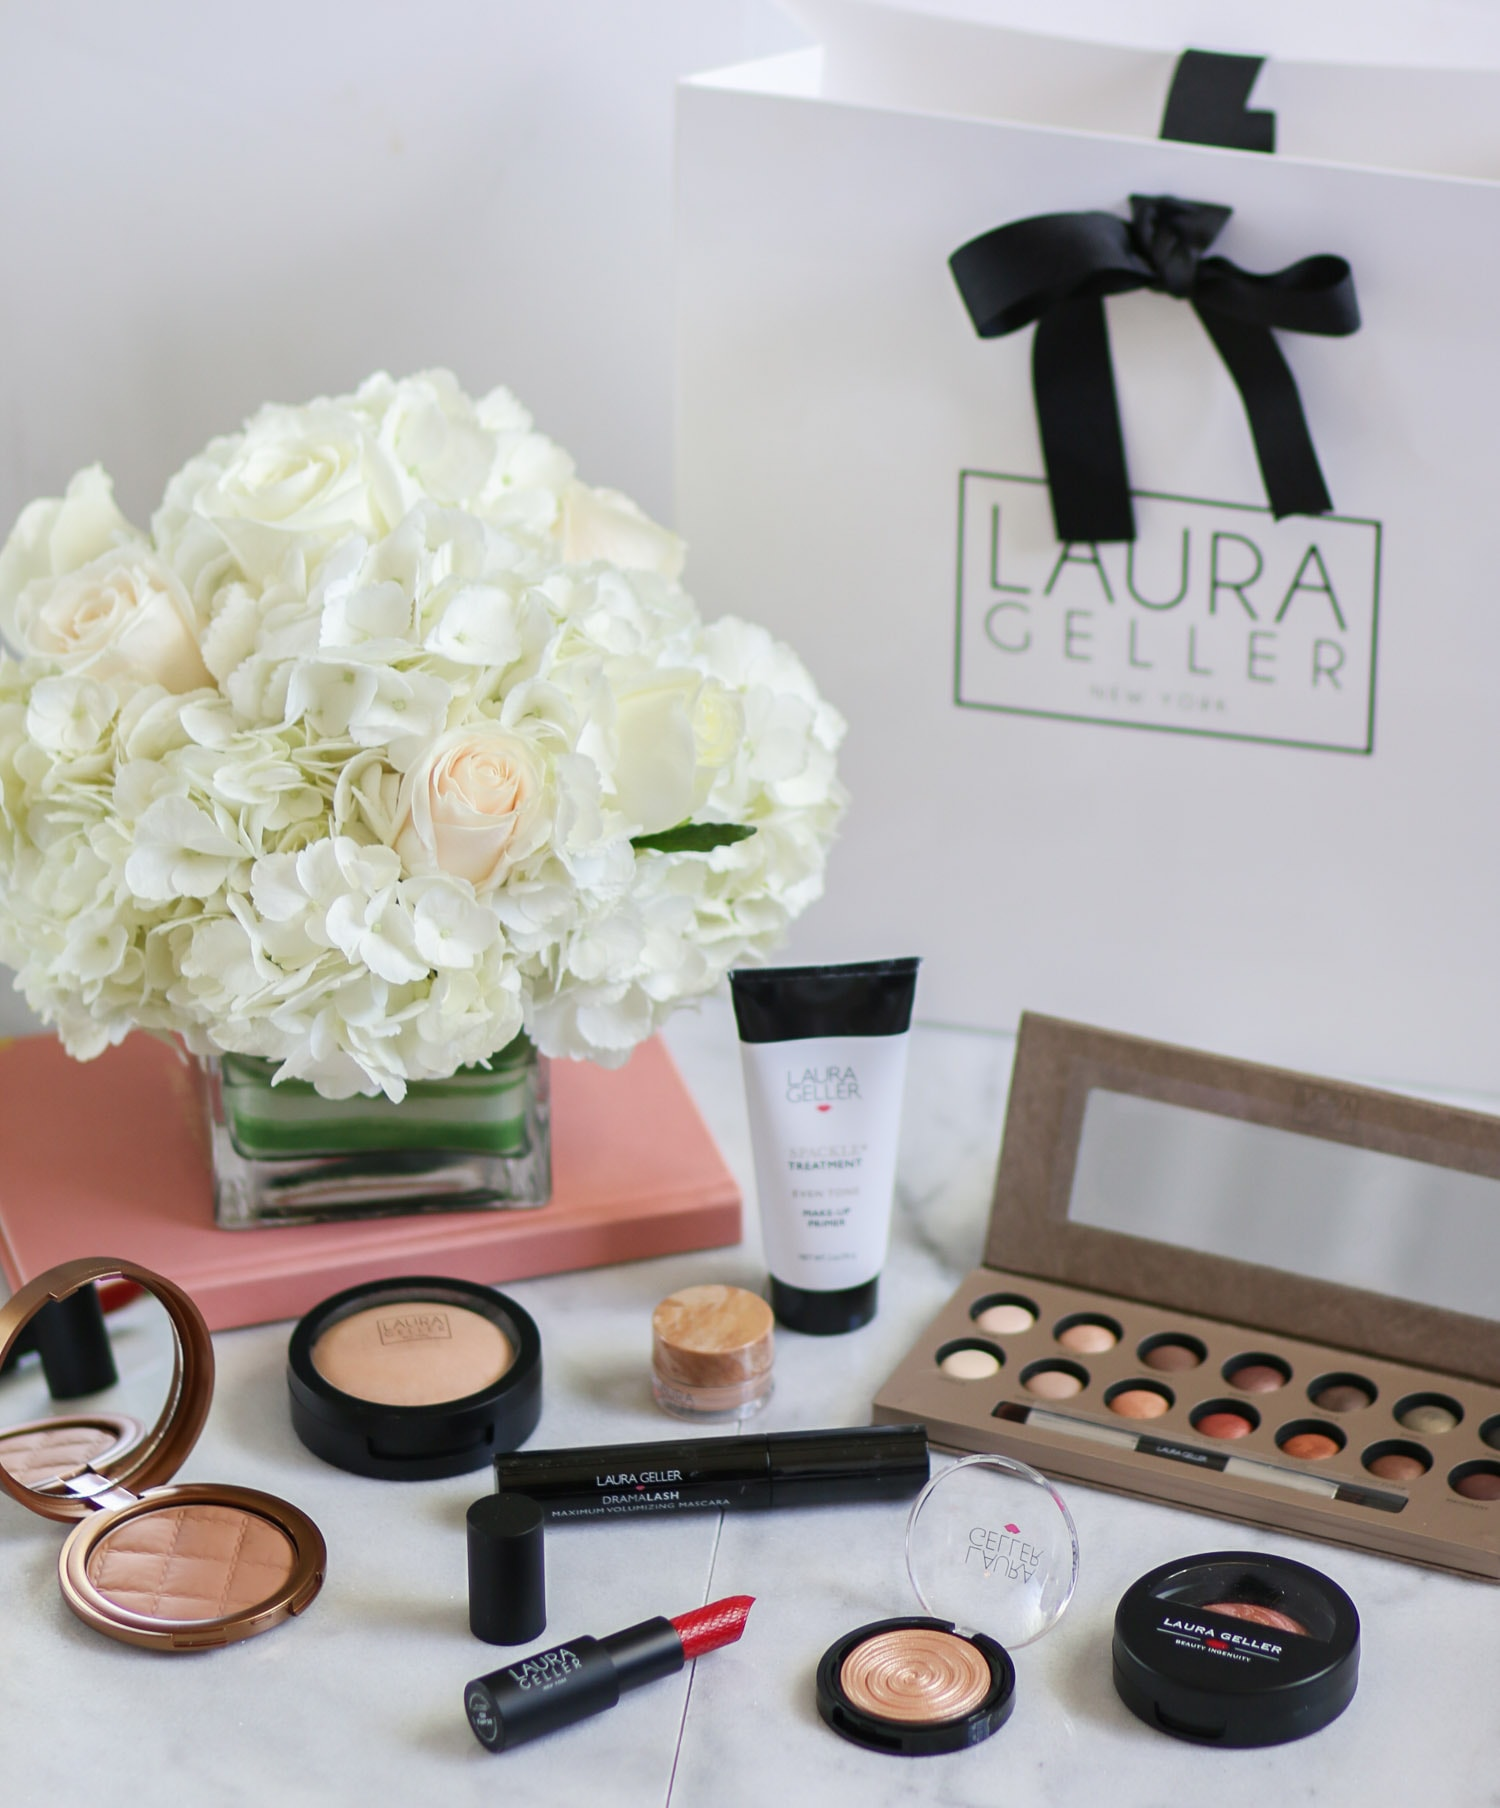 I Ve Been So Incredibly Impressed With These Laura Geller Makeup Products They Give